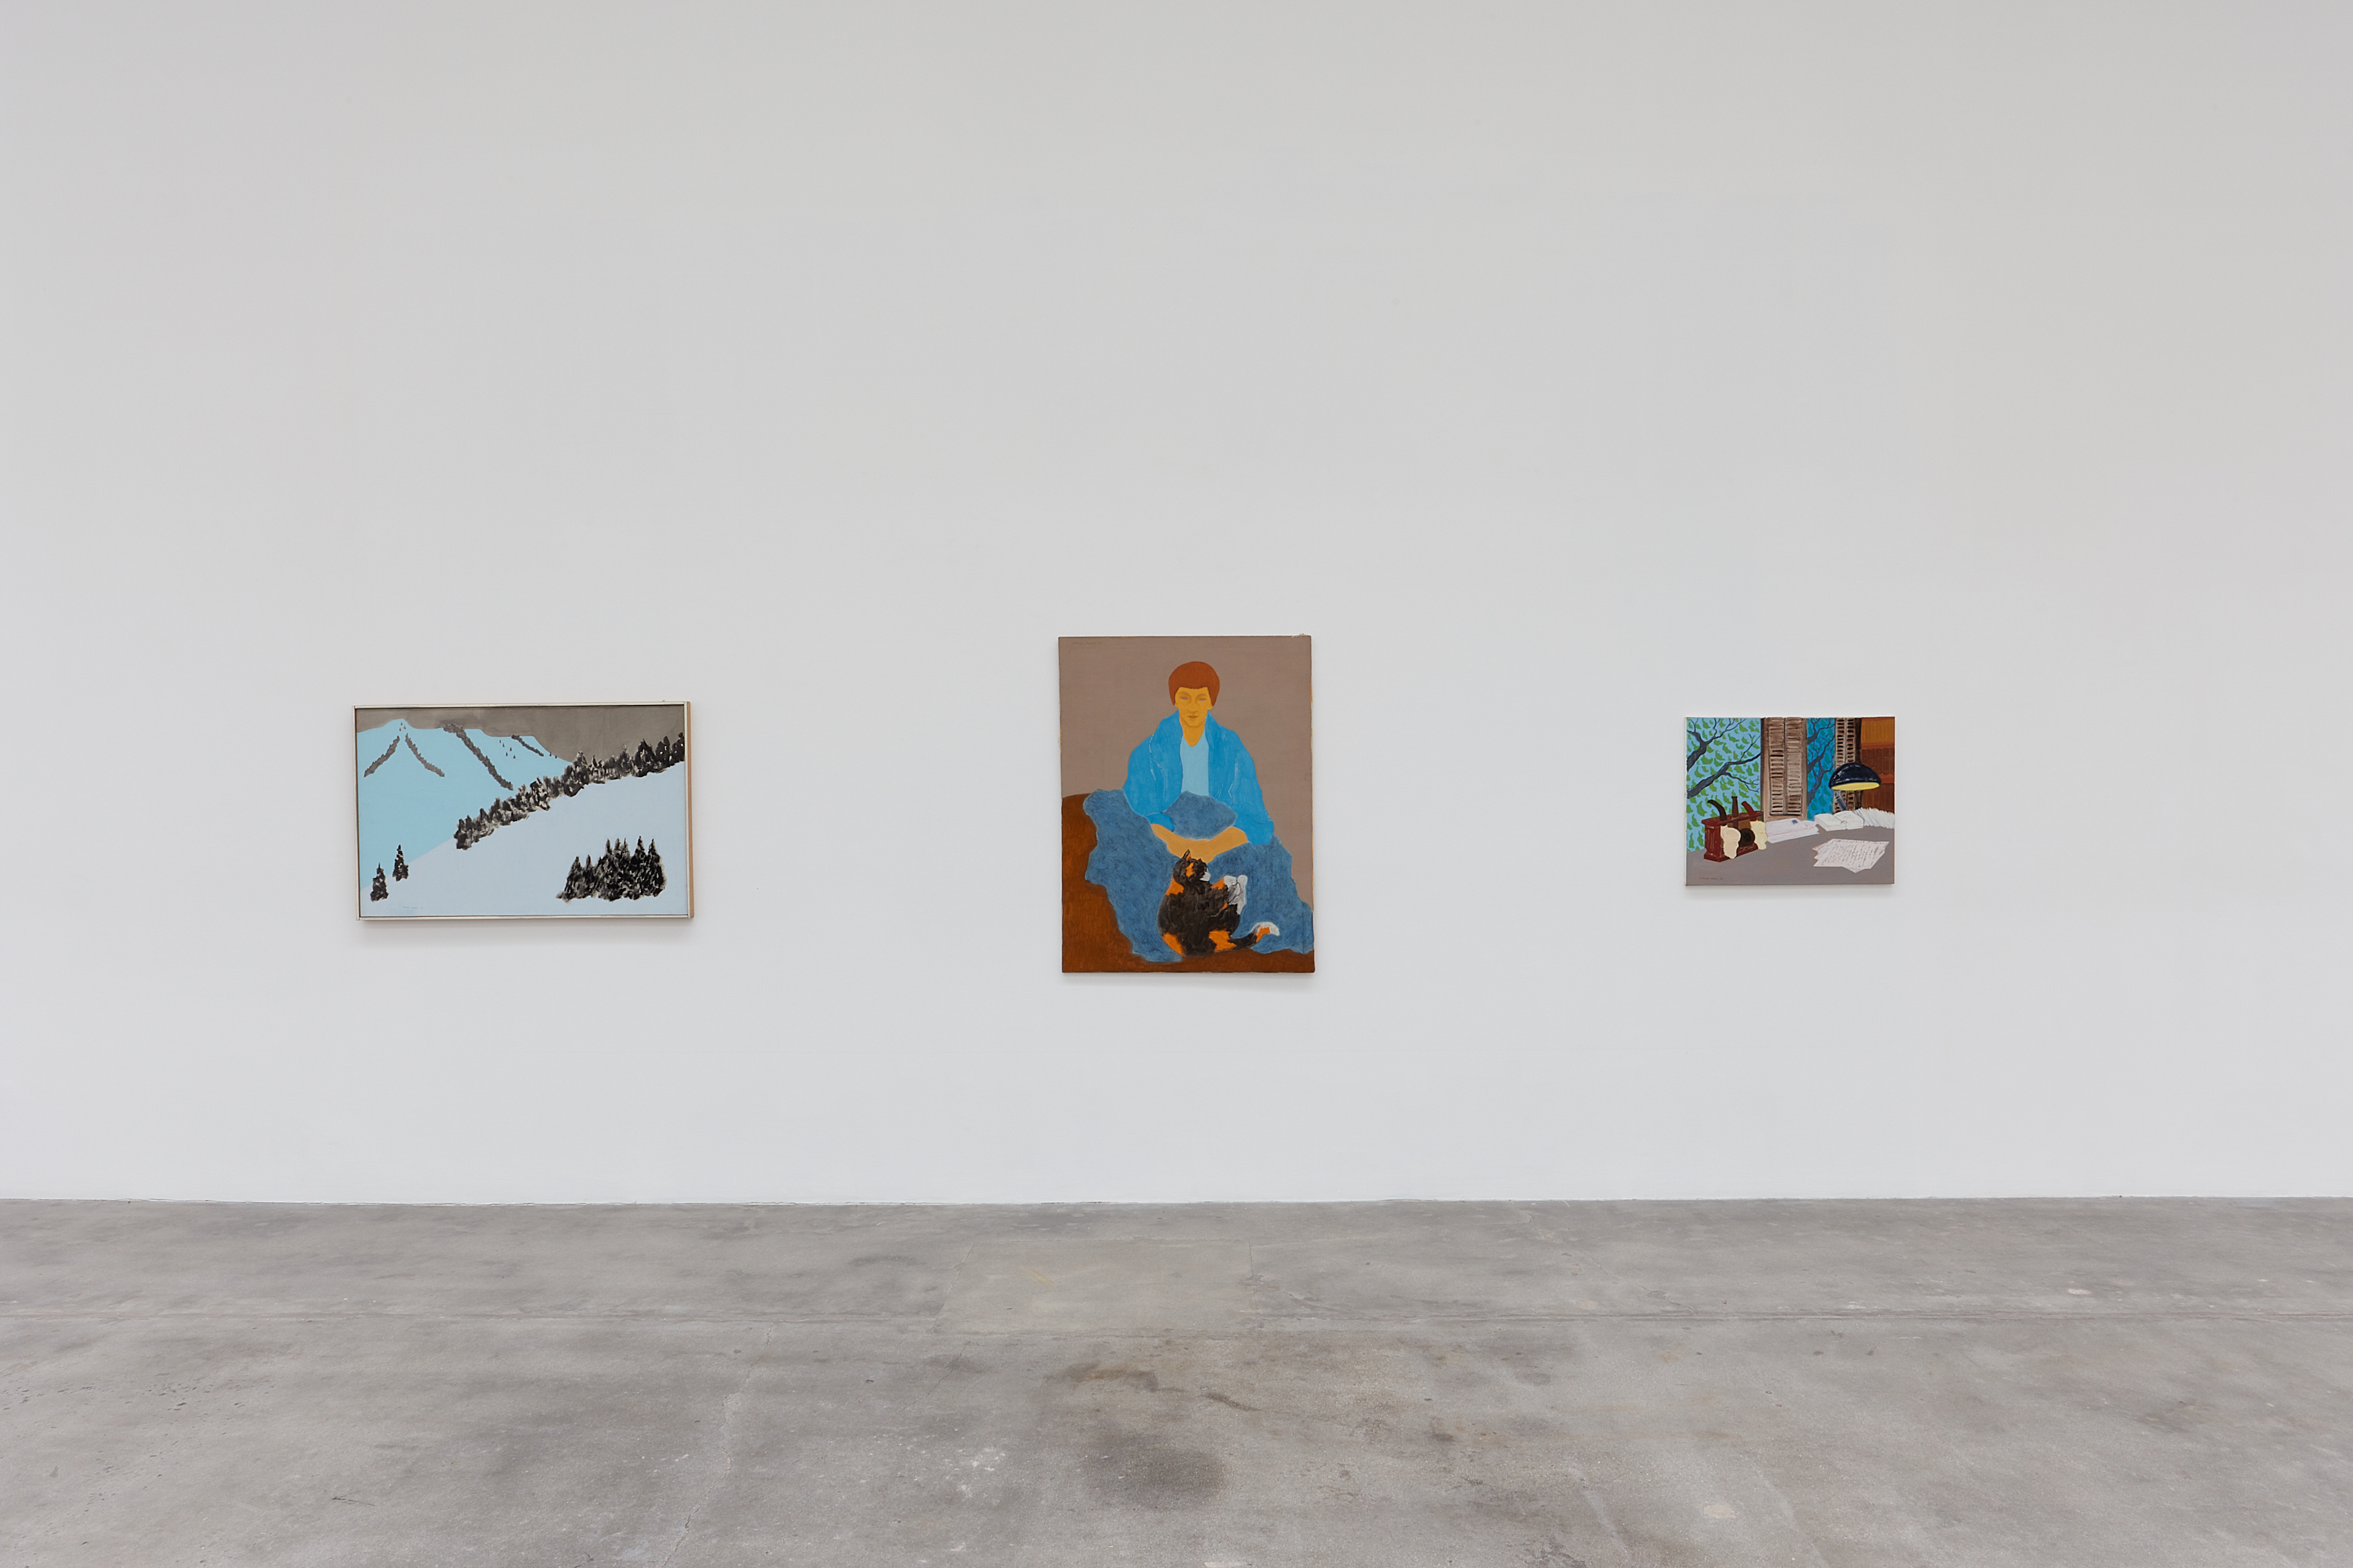 March Avery Installation view, 2020 Blum & Poe, Los Angeles © March Avery, Courtesy of the artist and Blum & Poe, Los Angeles/New York/Tokyo Photo: Heather Rasmussenn